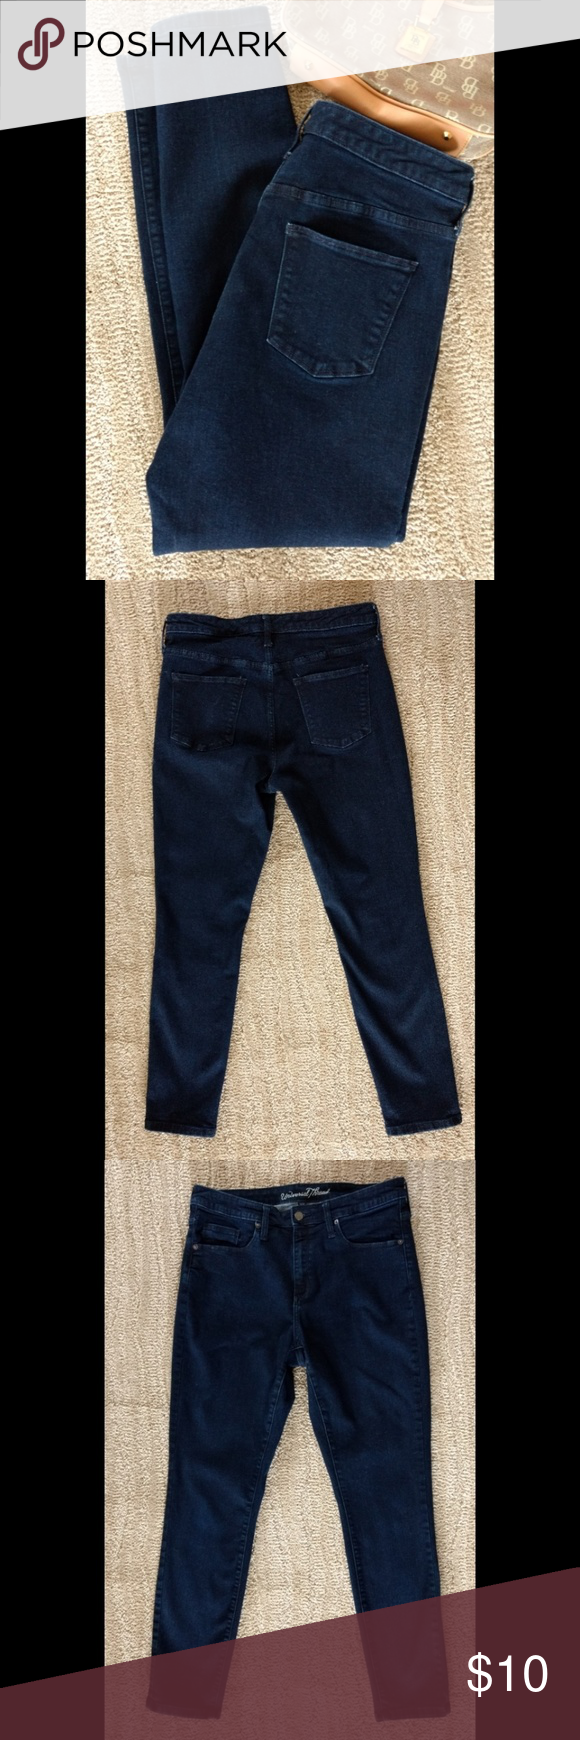 f4c3983fc3920c Universal Thread High Rise Skinny Jeans Size 14 Universal Thread high rise stretch  skinny jeans.